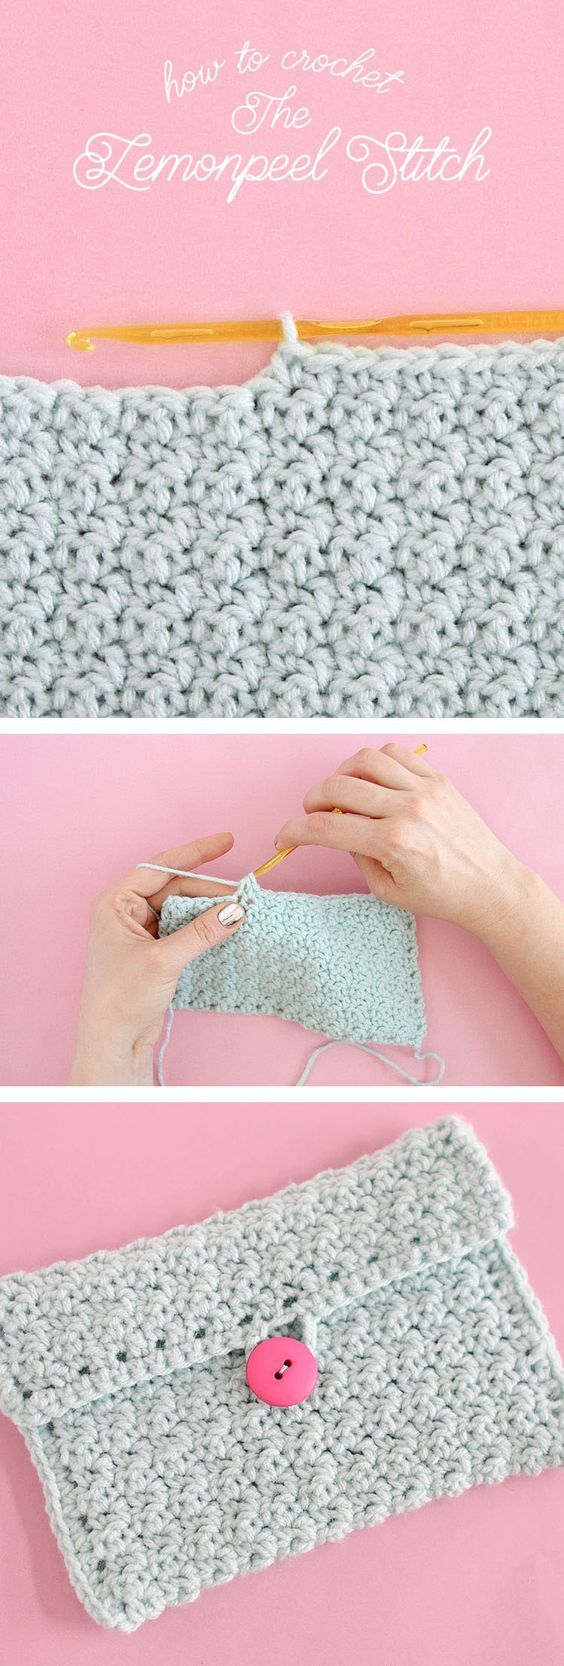 How to Crochet Lemon Peel Stitch - step by step tutorial for this simple stitch that gives lots of nice texture.: